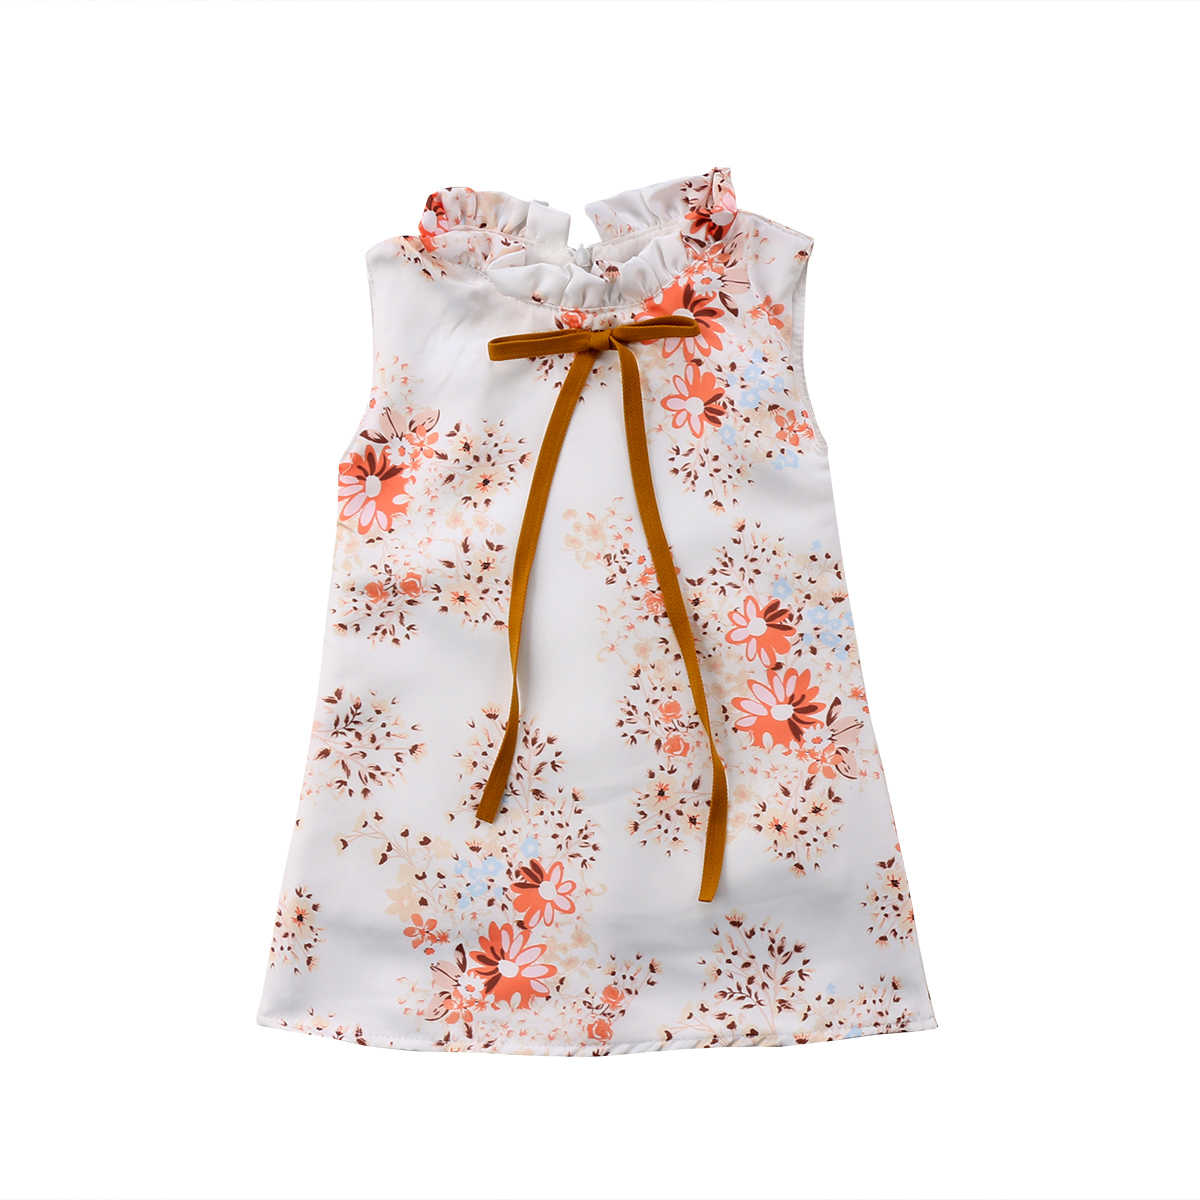 8d41aed70 Girls Summer Dress Baby Girl Clothes vintage 2018 Brand Children flowers  Princess Clothing Baby Dresses for